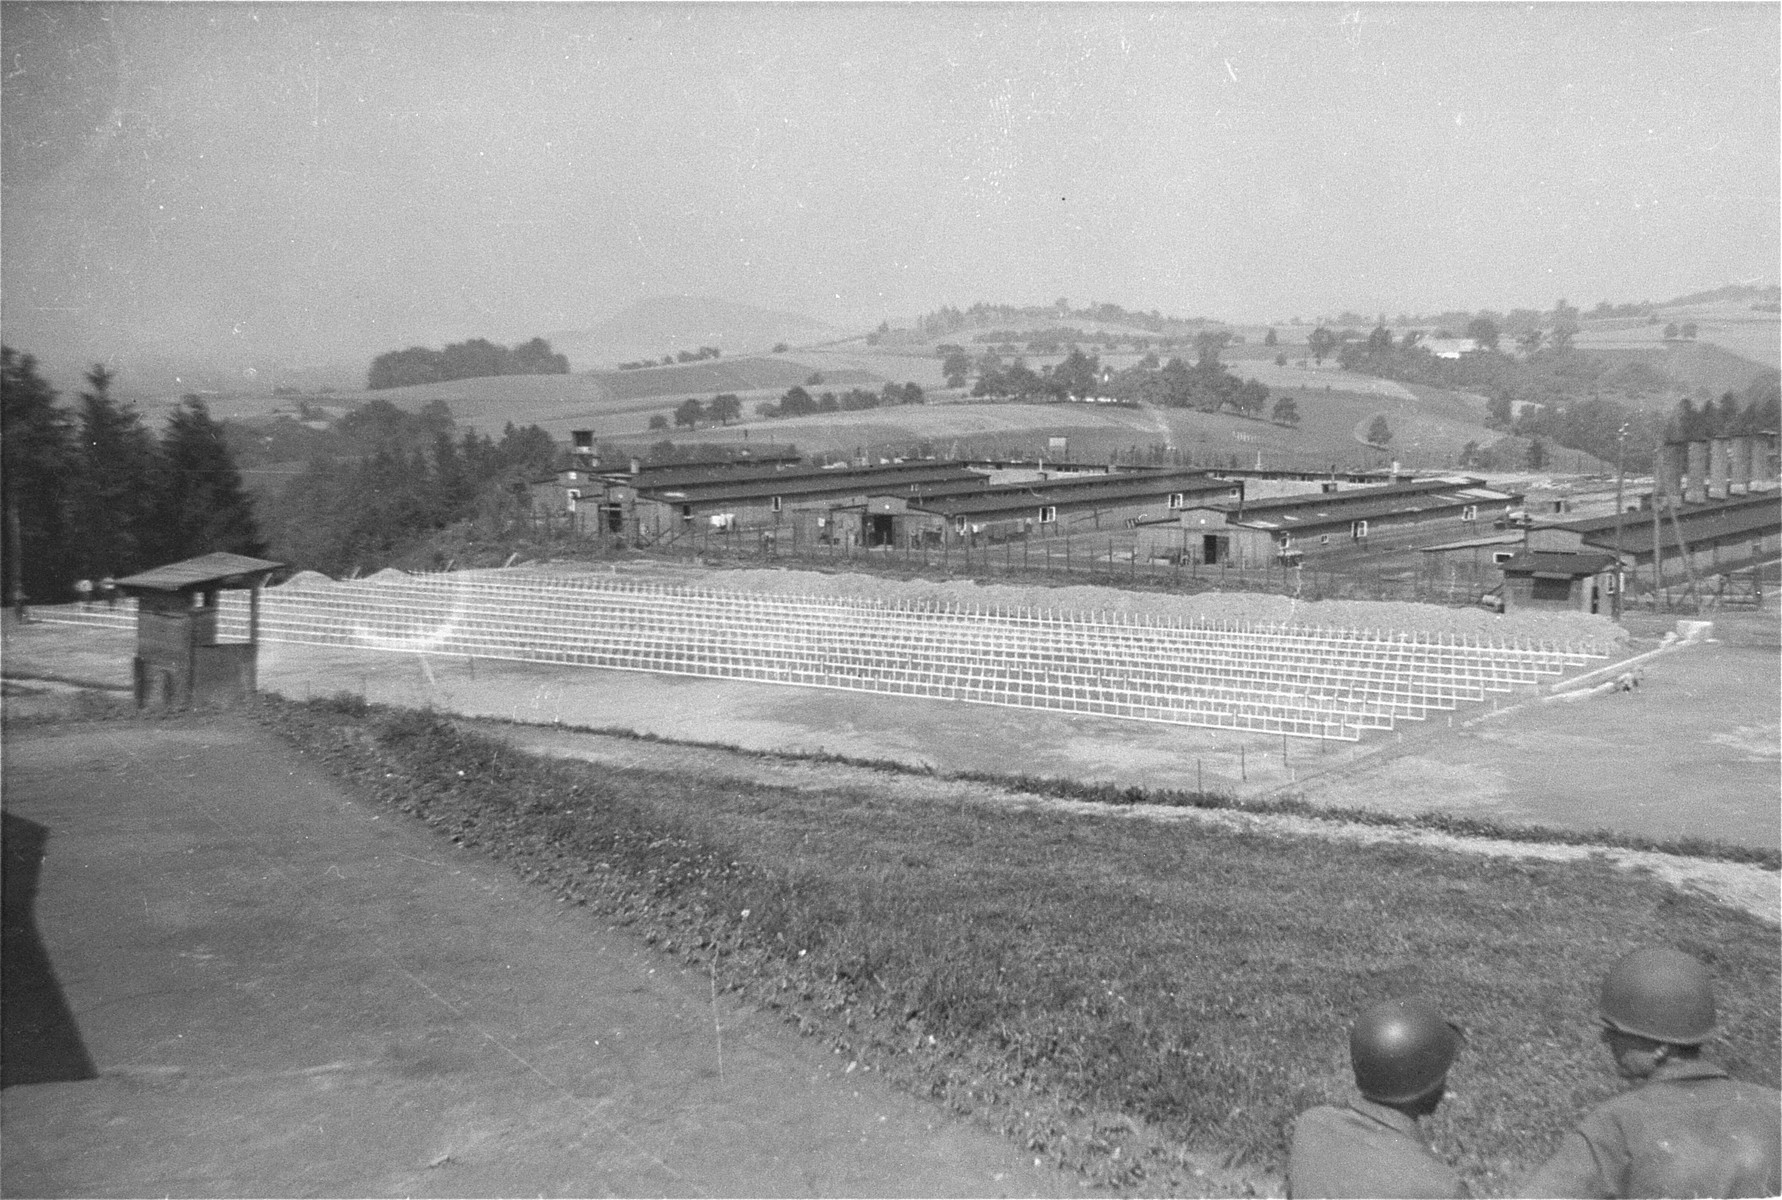 View of the cemetery at Mauthausen where nearly 3,000 corpses were buried.